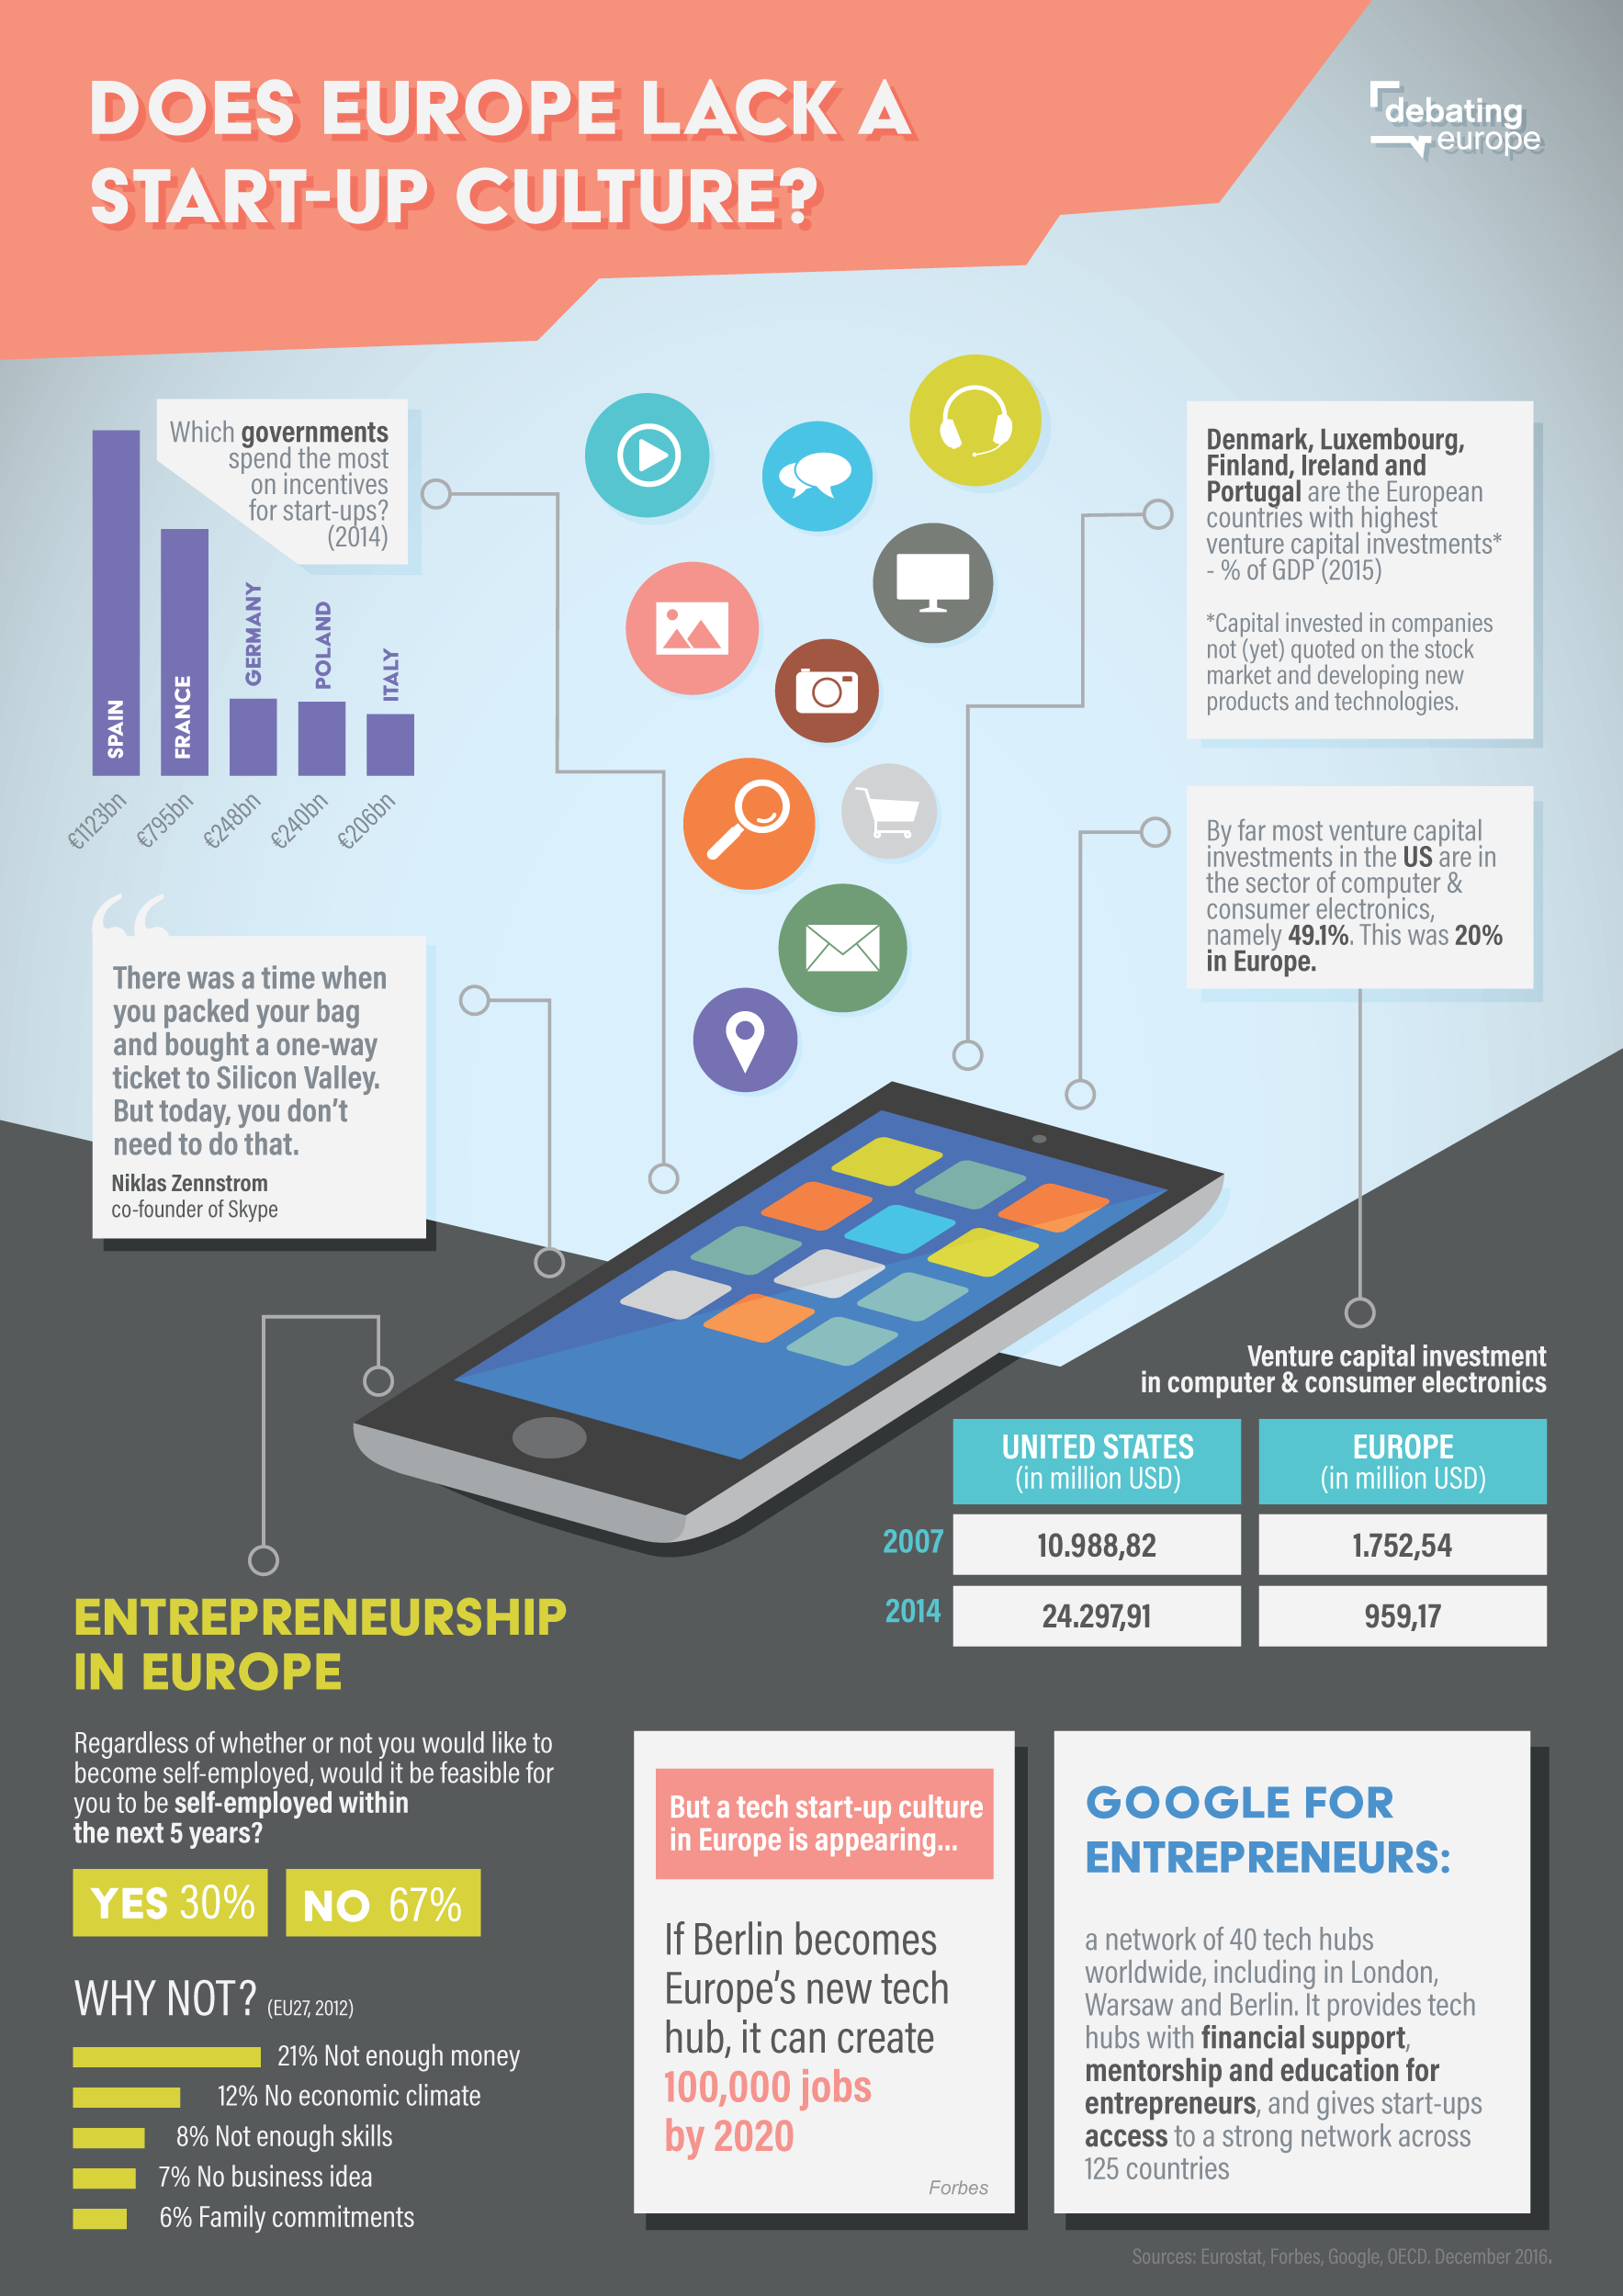 """This infographic asks the question """"Does Europe lack a startup culture."""" It shows stats about entrepreneurship in Europe. Among insights: Denmark, Luxembourg, Finland, Ireland and Portugal are the European countries with the highest venture capital investments. Most (49%) of U.S. VC investments are in computers and electronics whereas that's only 20% in Europe. Spaina nd France spend the most on government incentives for startups as of 2014. Google does have tech hubs in London, Warsaw and Berlin. And only 30% of Europeans polled said it would be possible to be self-employed in the next five years, compared to 67% who said it wouldn't. Copyrighted image."""